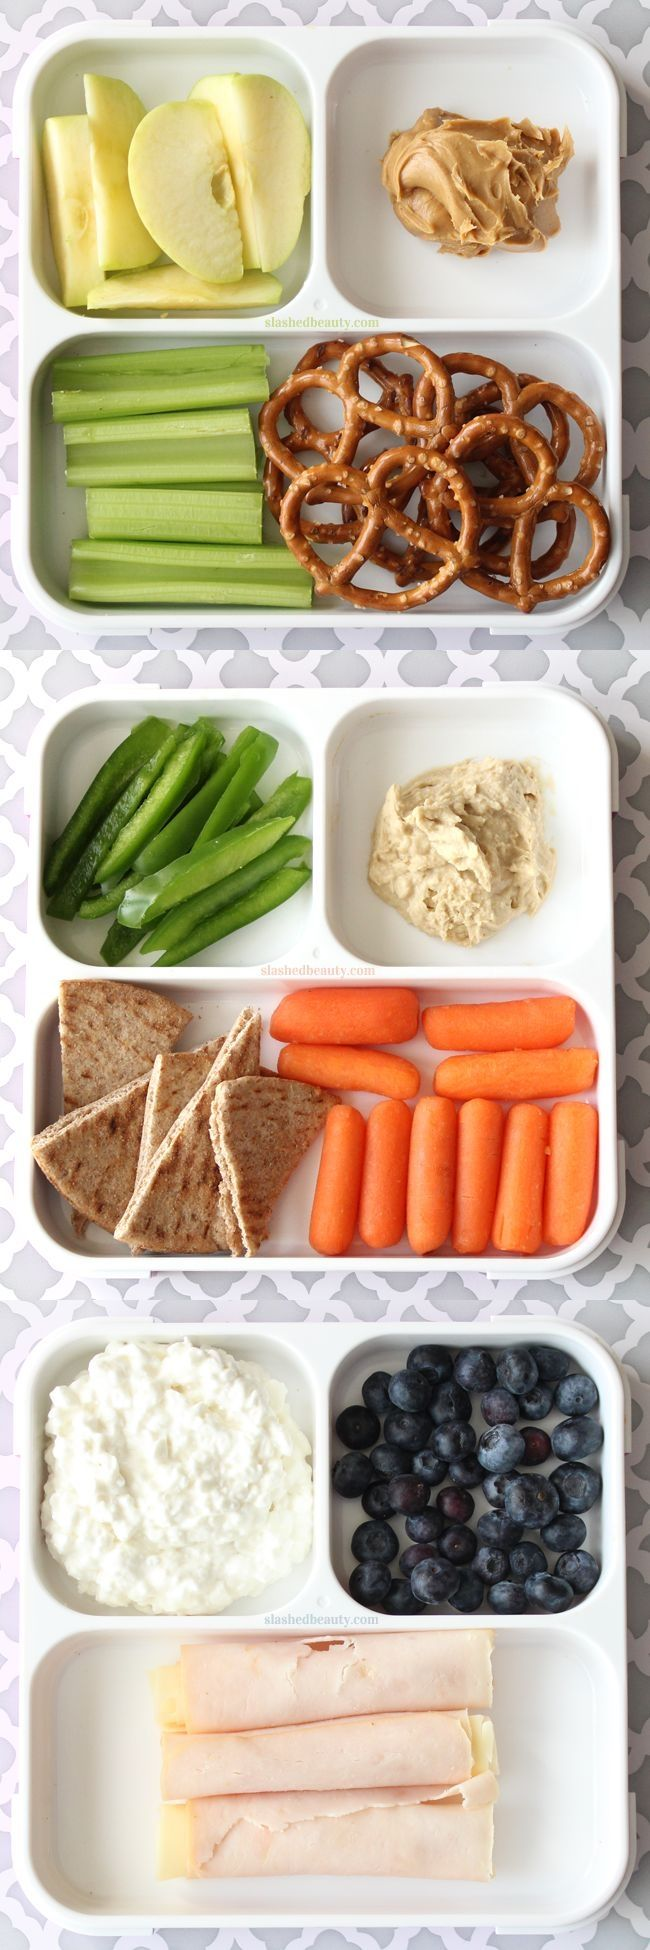 Need some healthy snack inspiration for work or school? Here are three snack pack ideas that will keep you full and on track with your fitness goals! | Slashed Beauty #weightlossrecipes